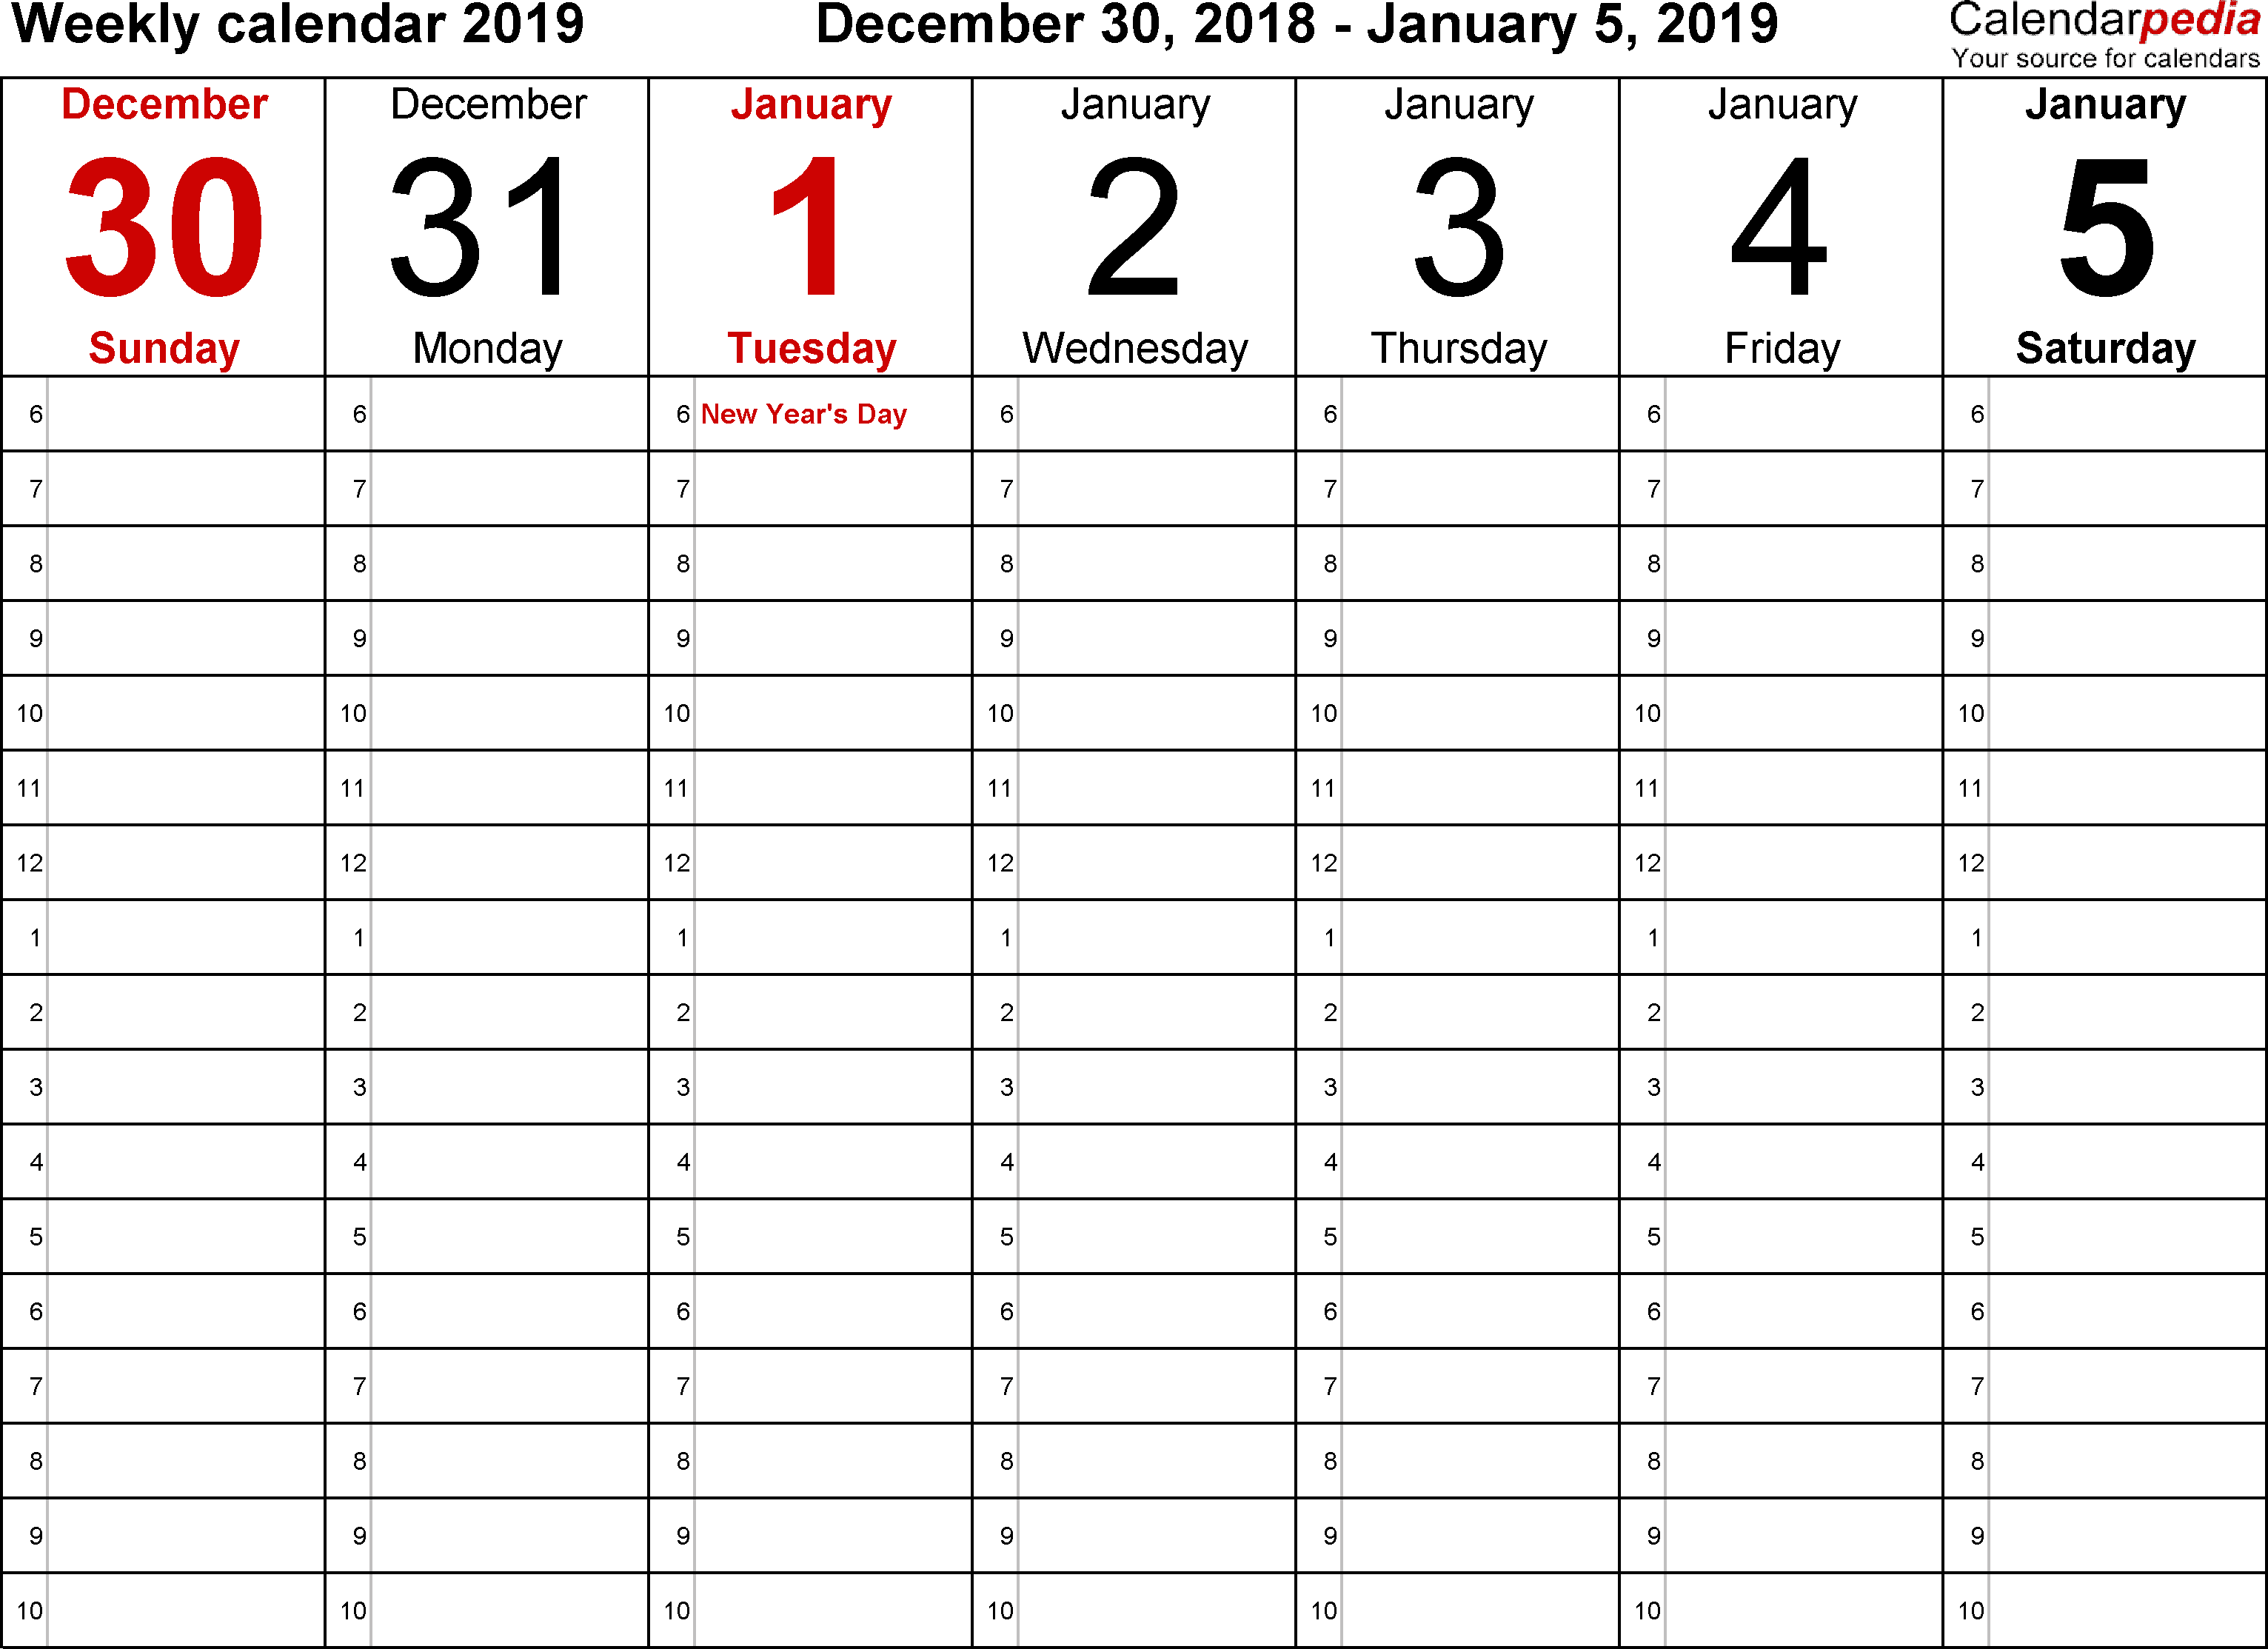 Scheduling Calendar 2019 Weekly calendar 2019 for Word   12 free printable templates